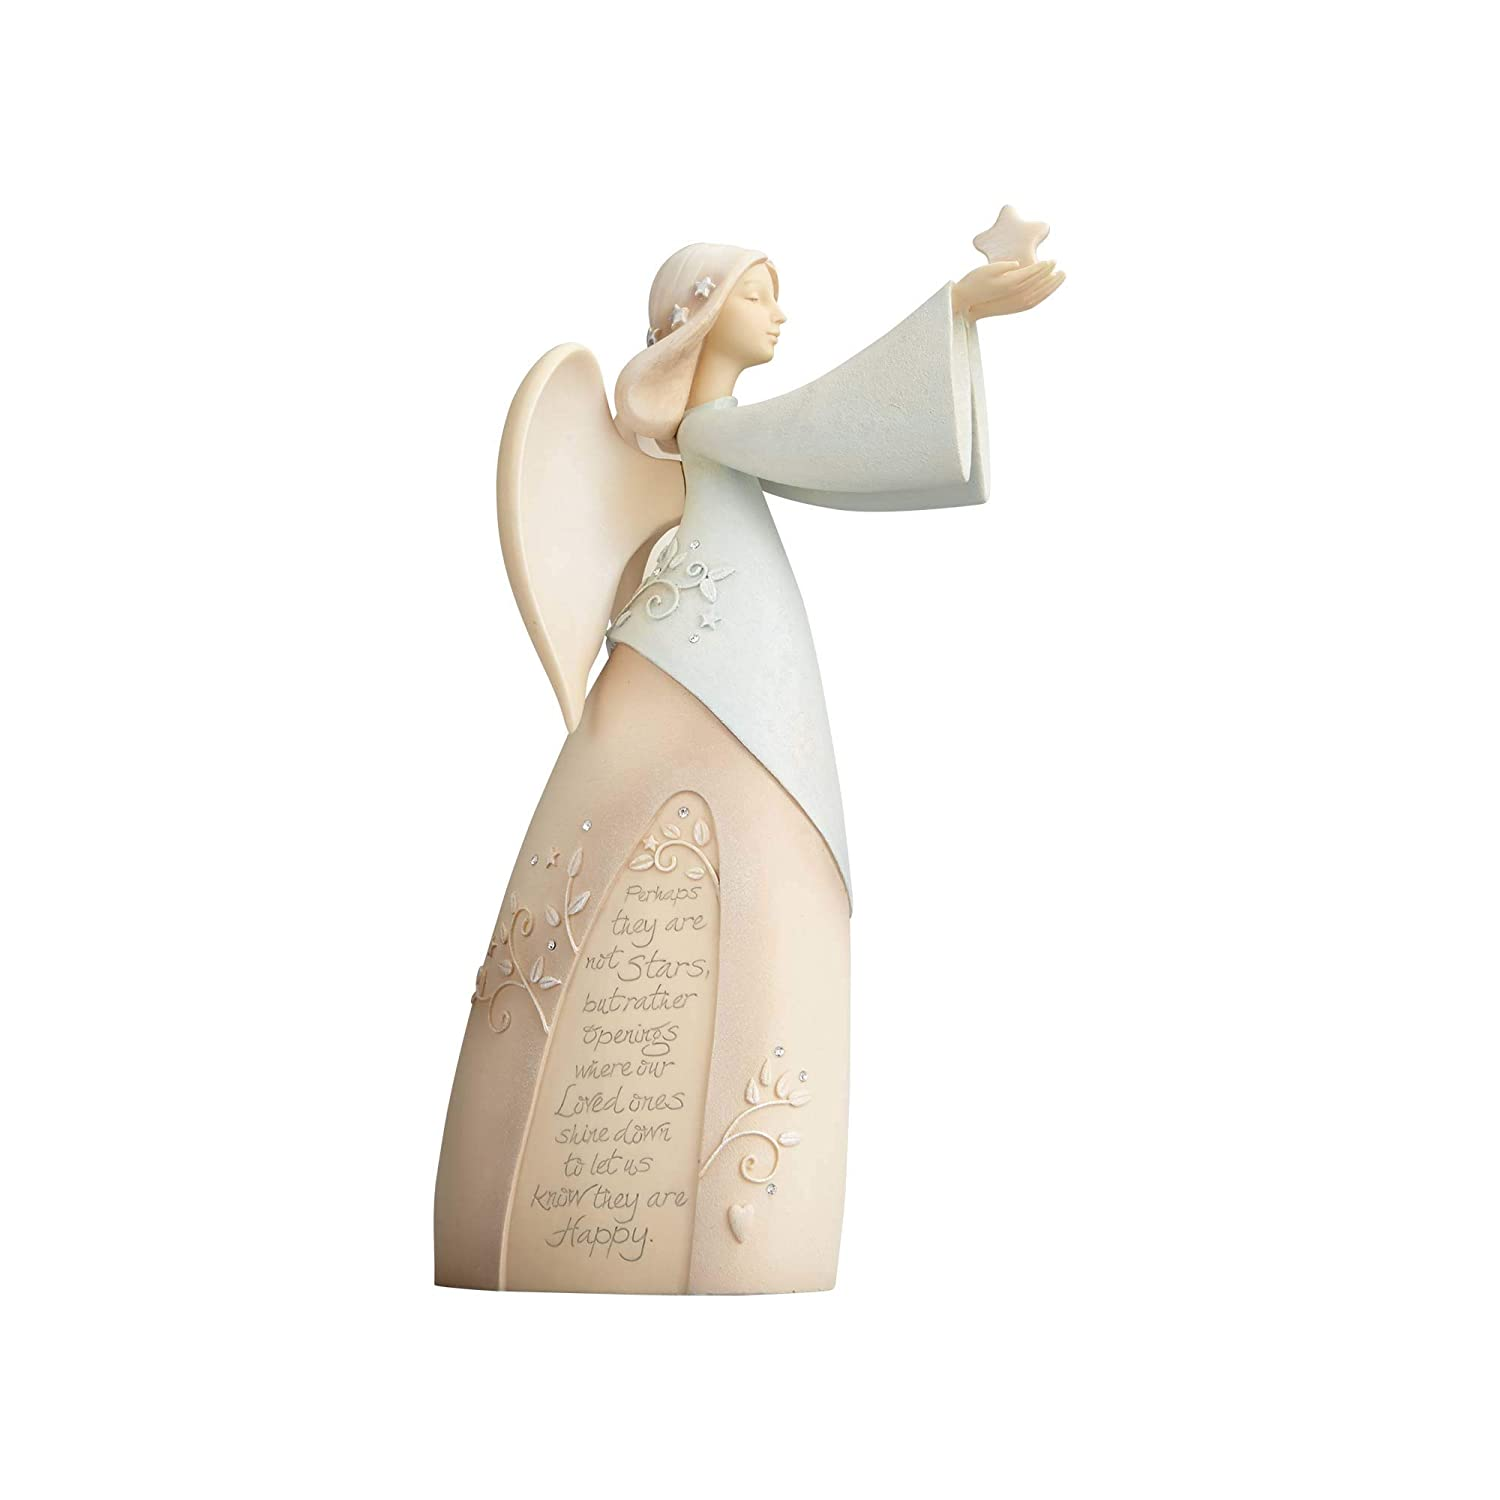 Bereavement Angel Figurine Foundations 4014049 Dolls and Articulated Figures Non-Classifiable